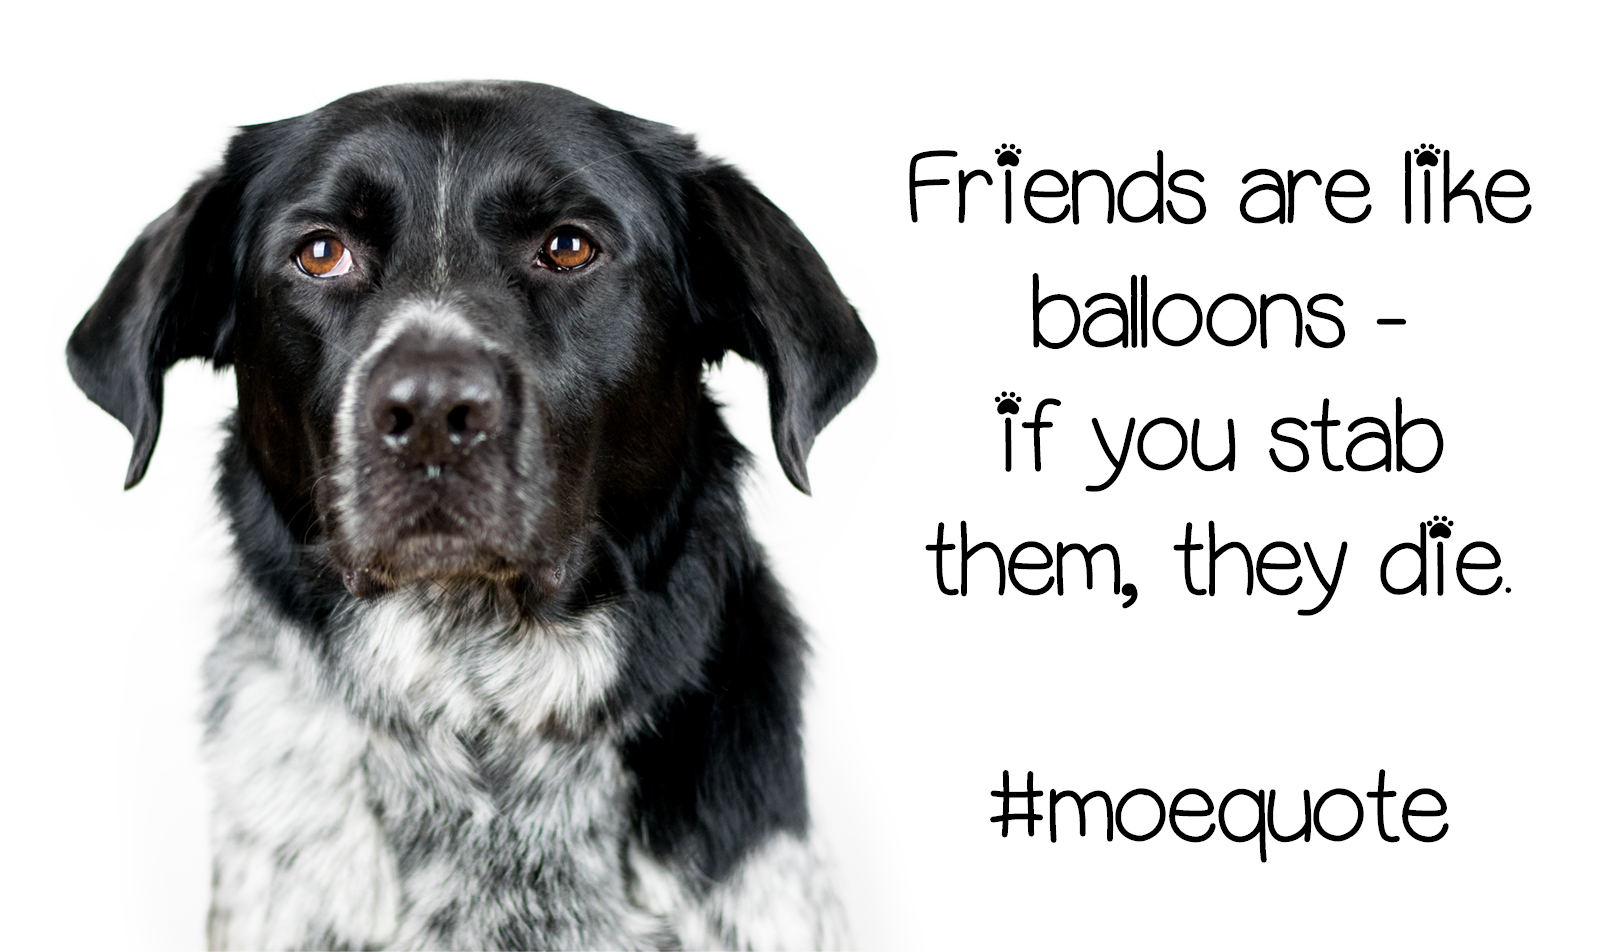 Friends are like balloons - if you stab them they die